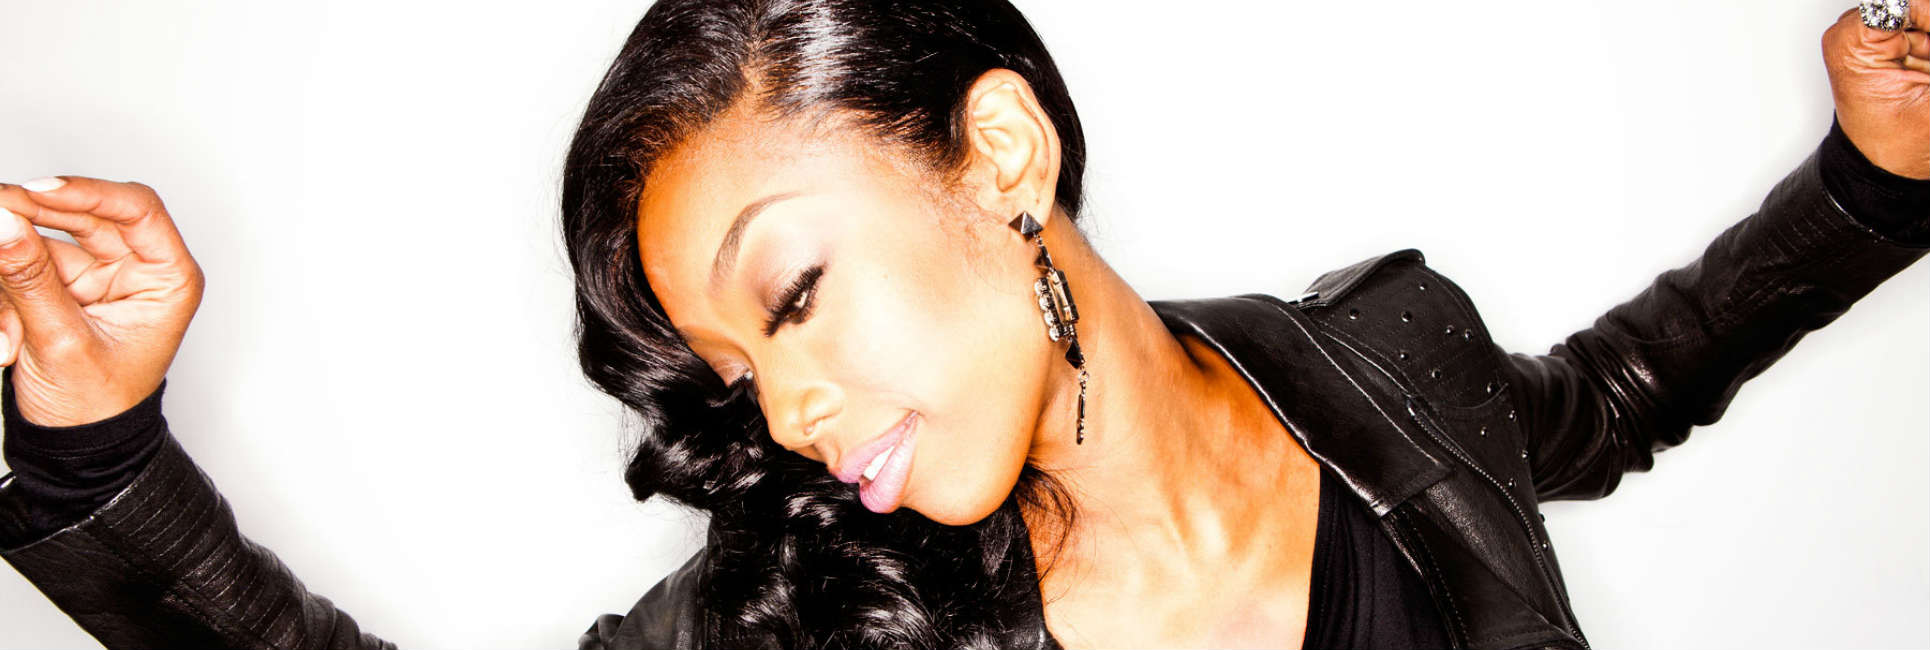 hair story brandy norwood unruly